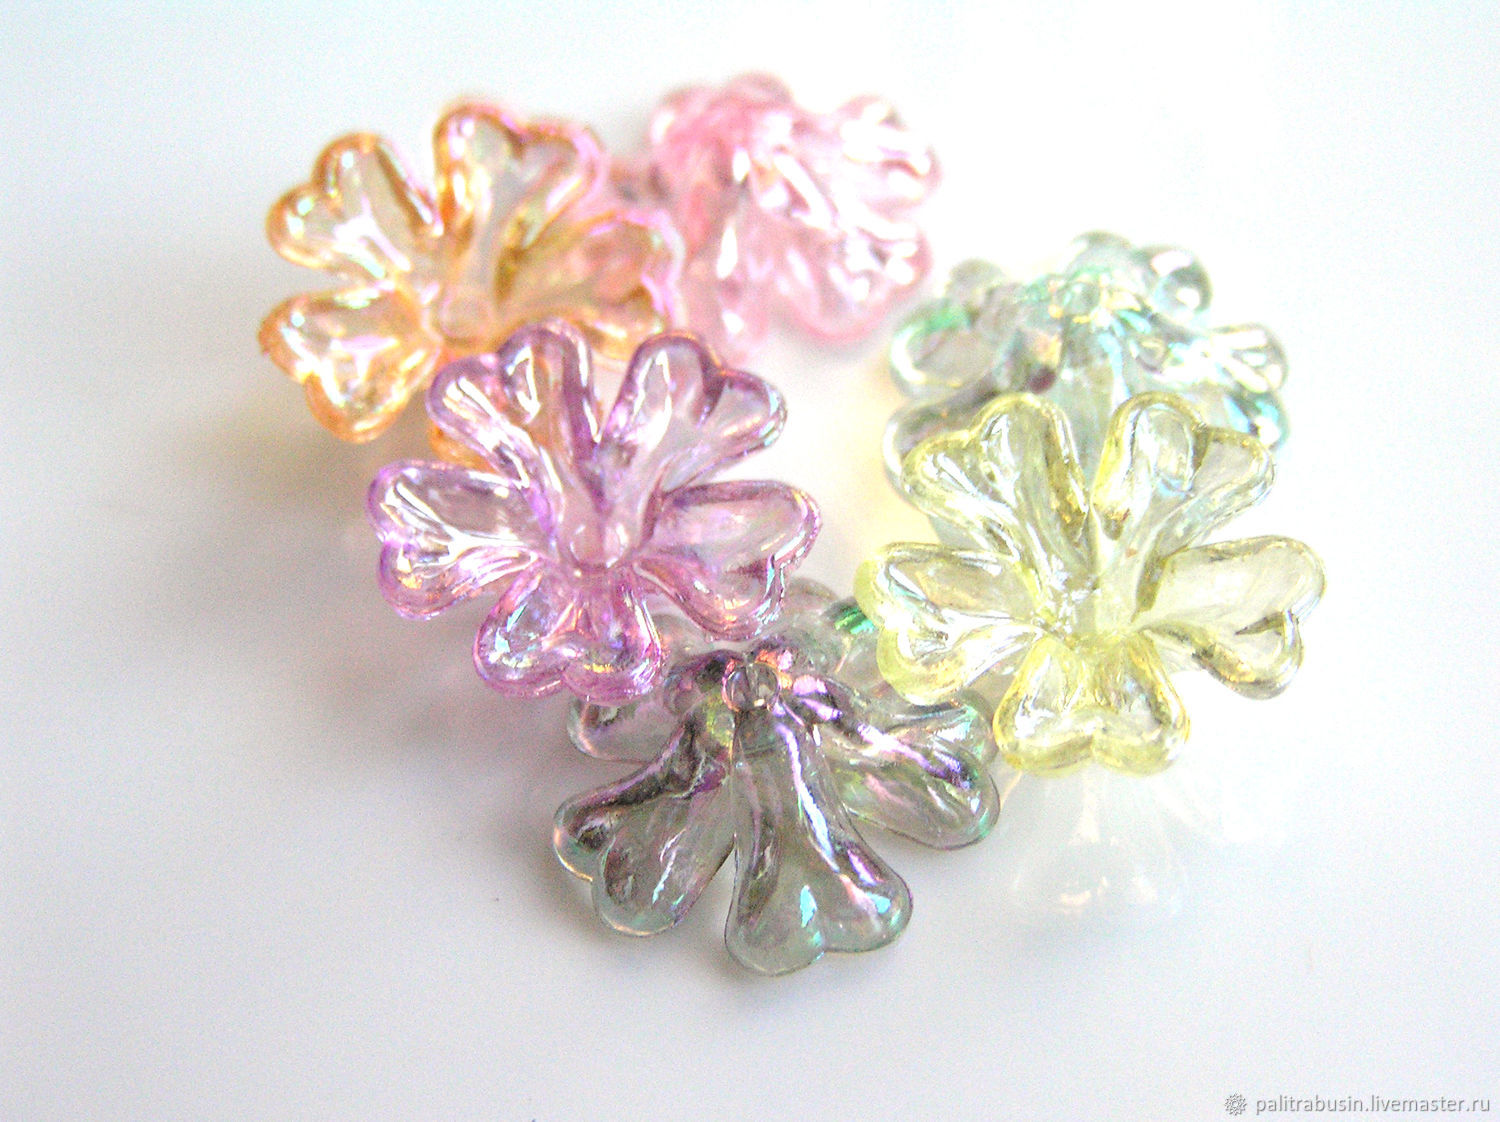 Acrylic spacer beads flowers, Beads1, Tyumen,  Фото №1